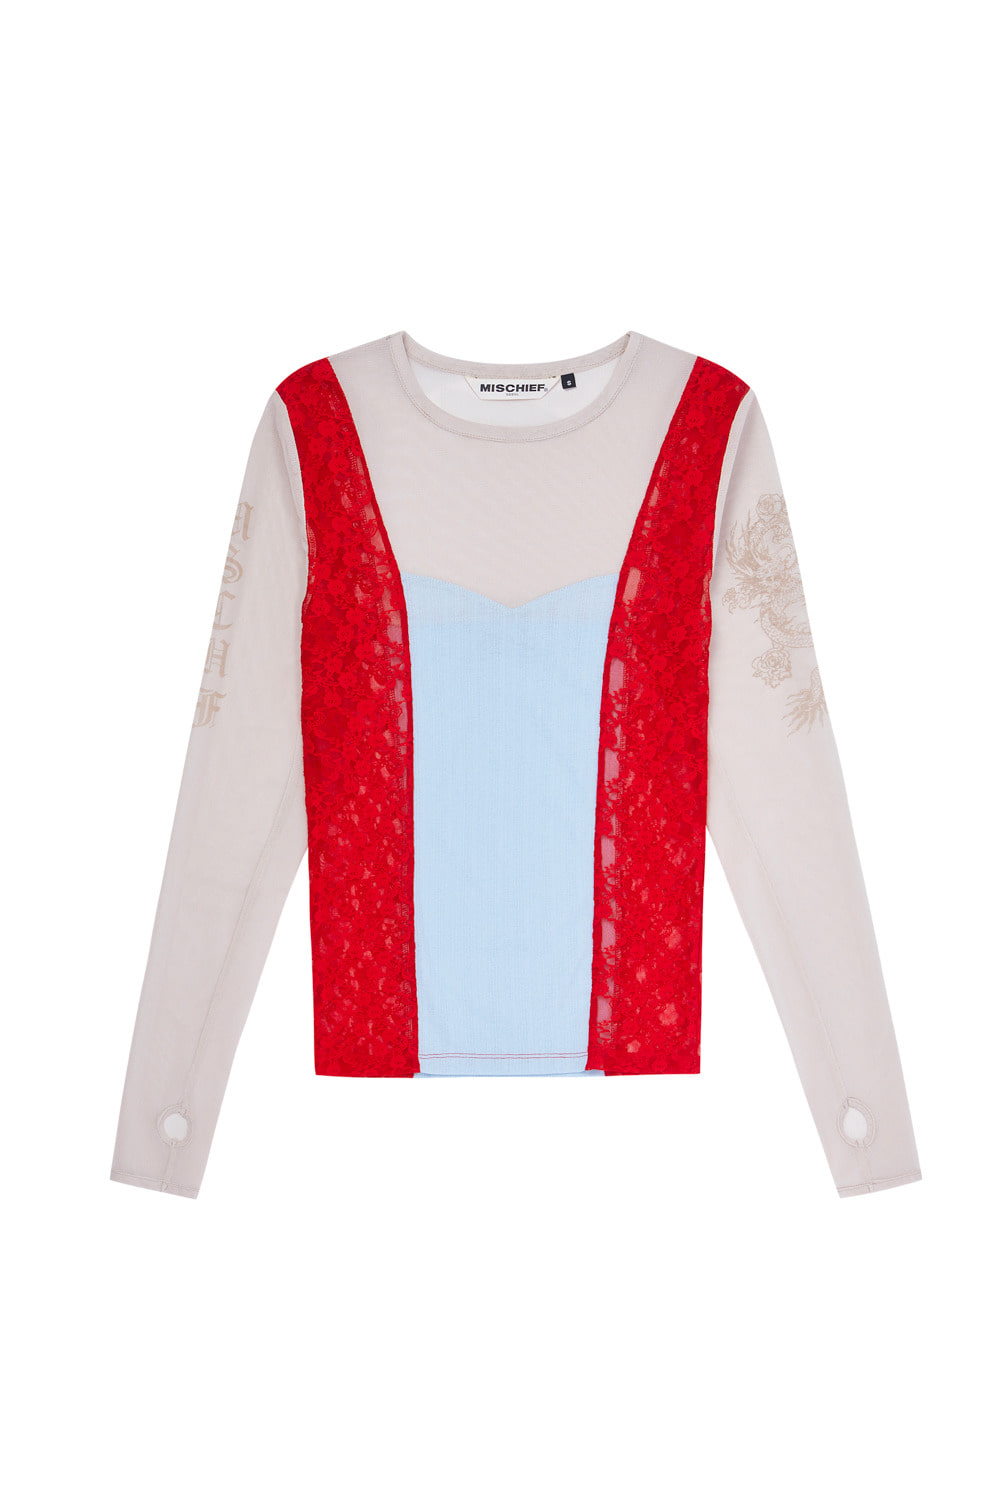 MESH PATCHWORK FITTED LONG SLEEVE_beige/red/sky blue